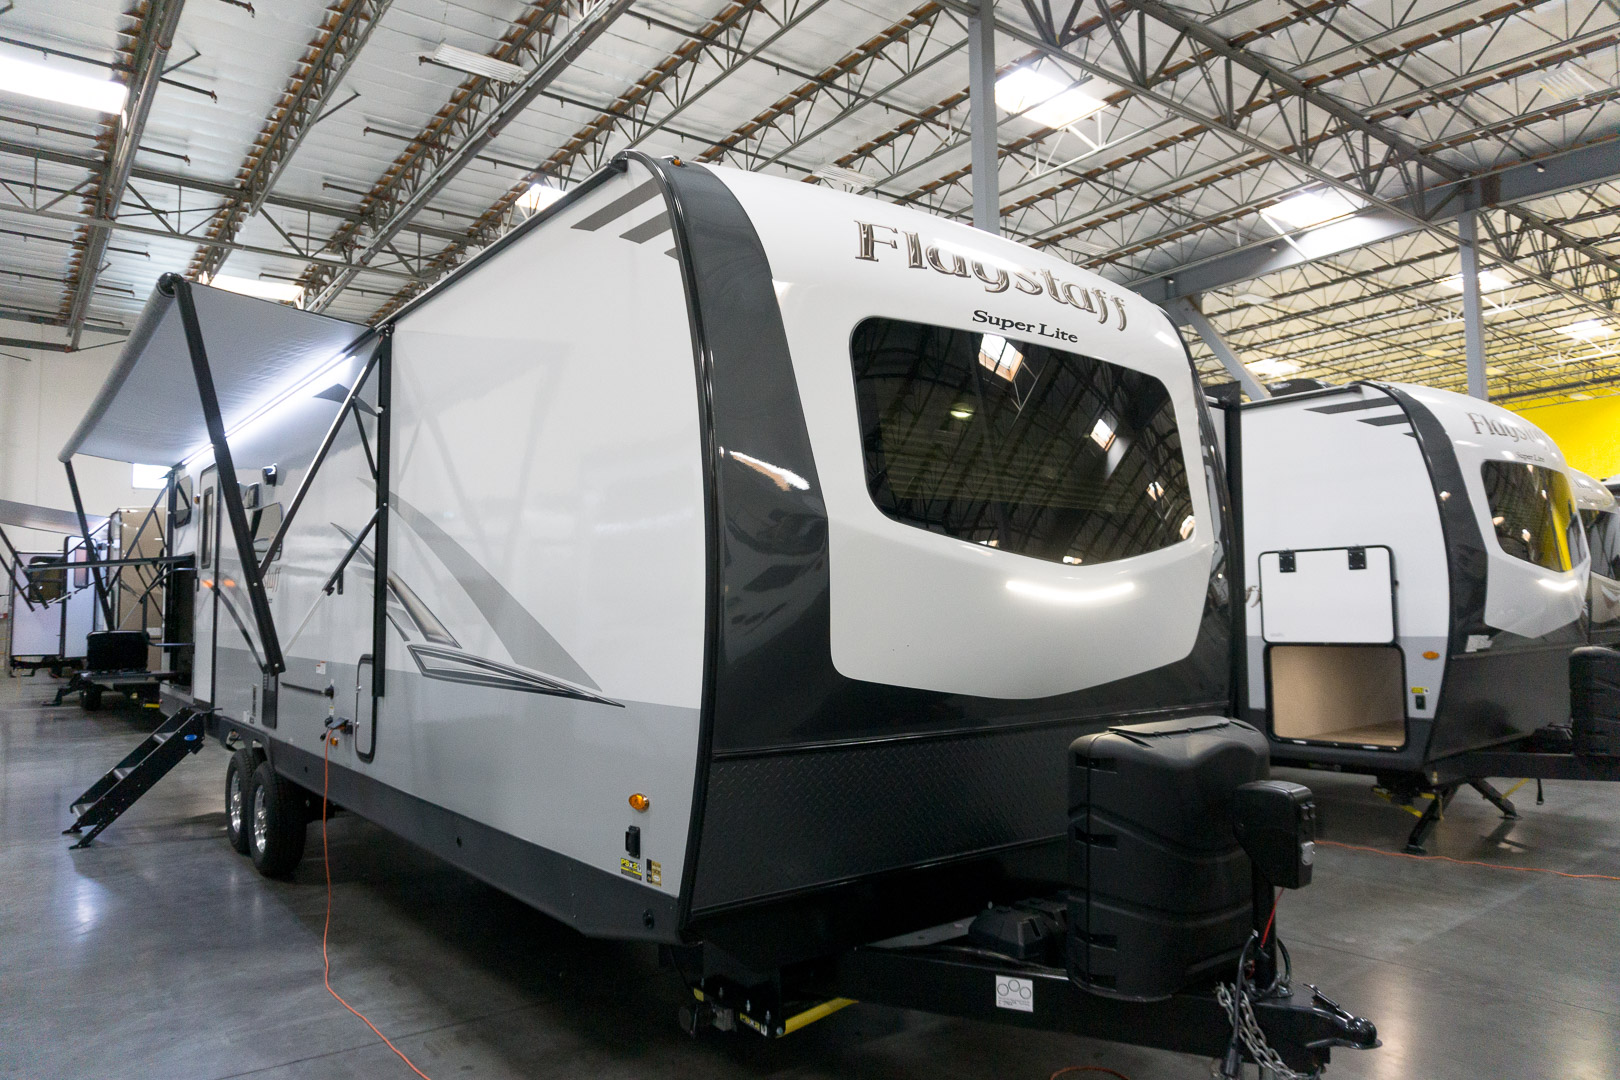 2019 FOREST RIVER FLAGSTAFF SUPER LITE 29BHS